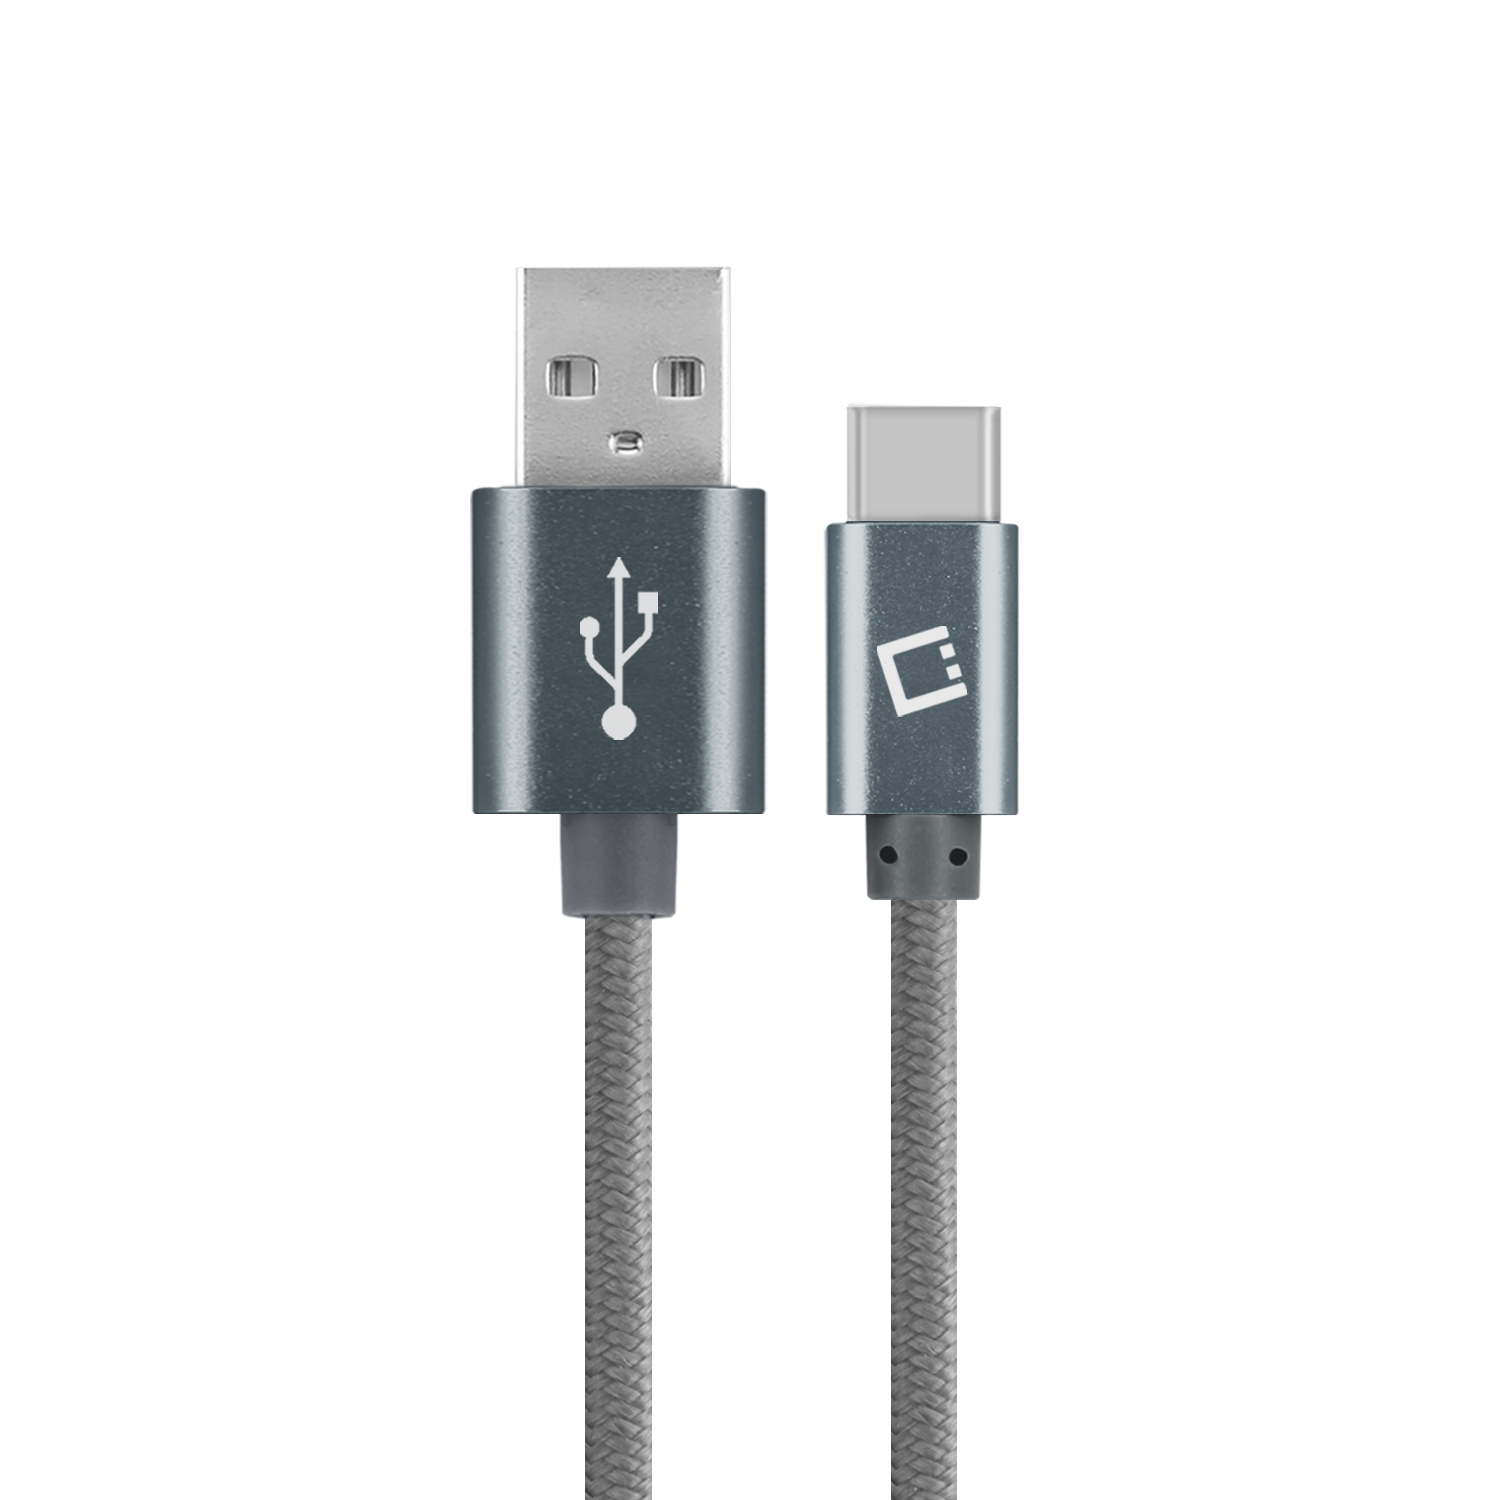 Huawei P9 USB Type-C To Type-A Braided Data Power Cable Grey 4ft Braided